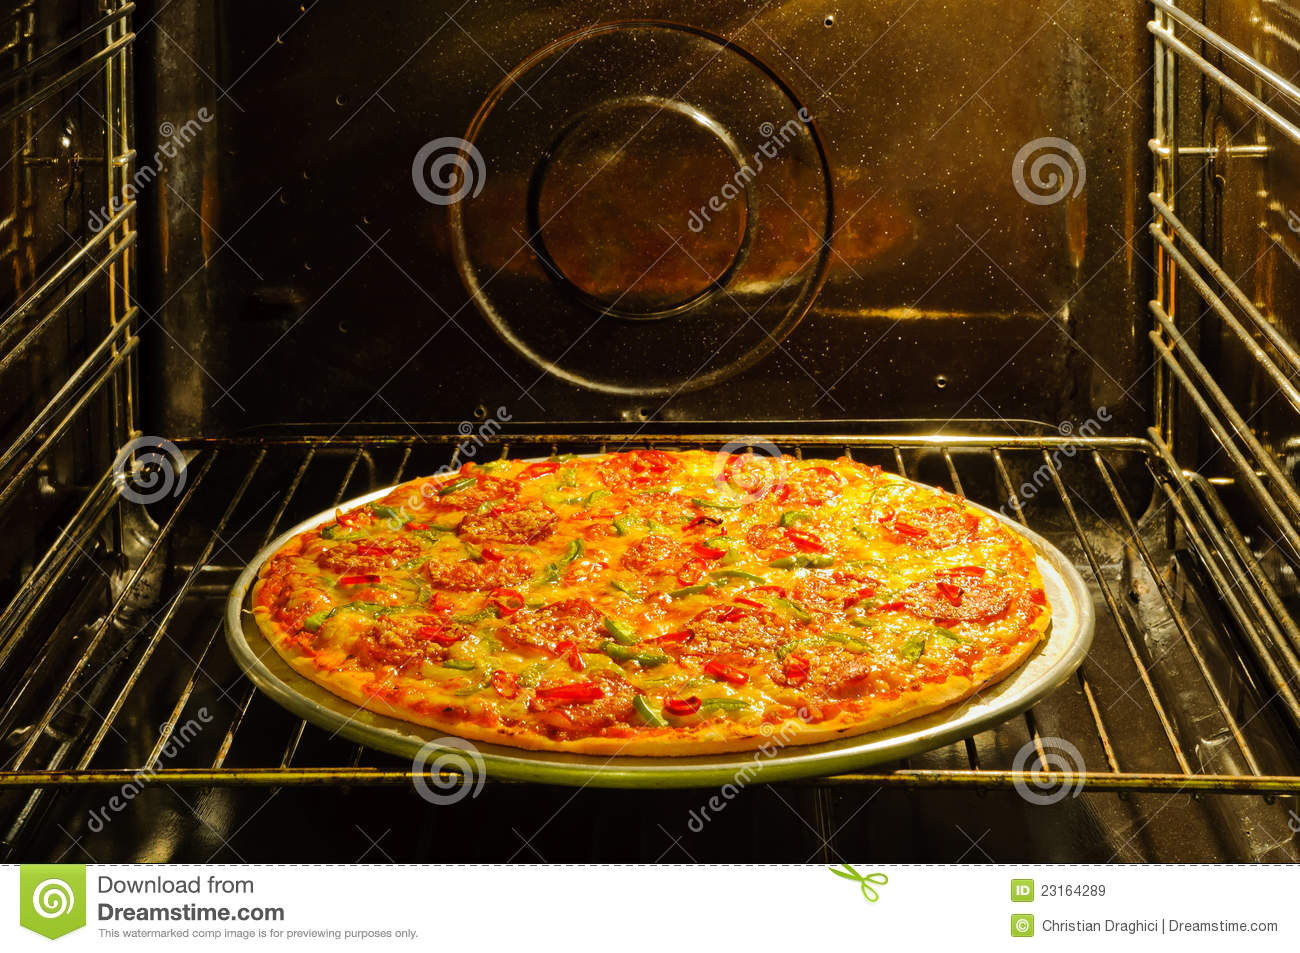 homemade pizza in oven stock image image of home pepperoni 23164289. Black Bedroom Furniture Sets. Home Design Ideas